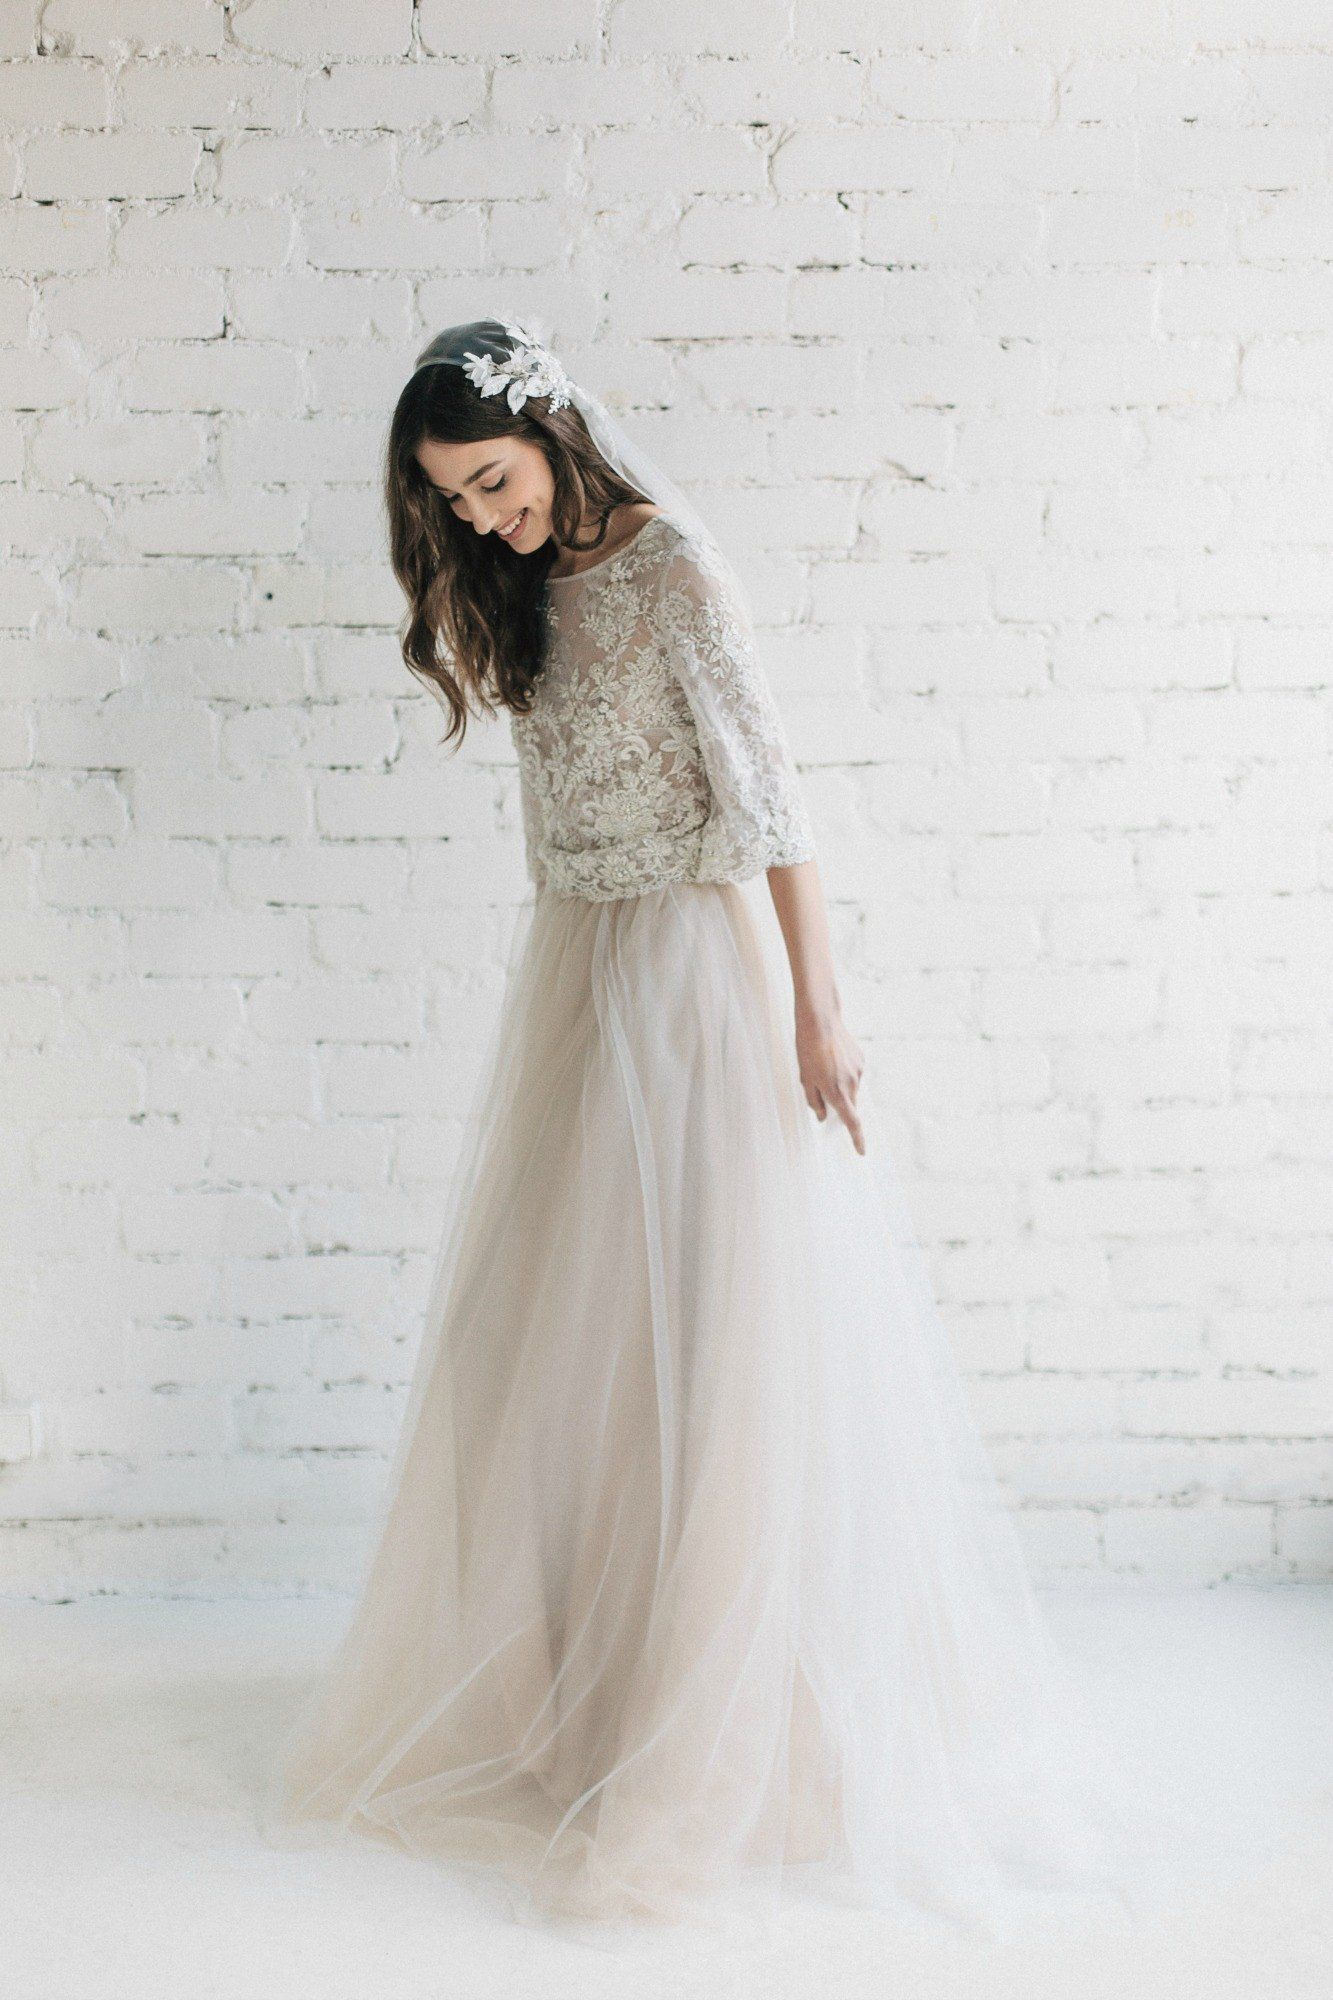 Lacey wedding dress with transparent accents and a wide flowy skirt